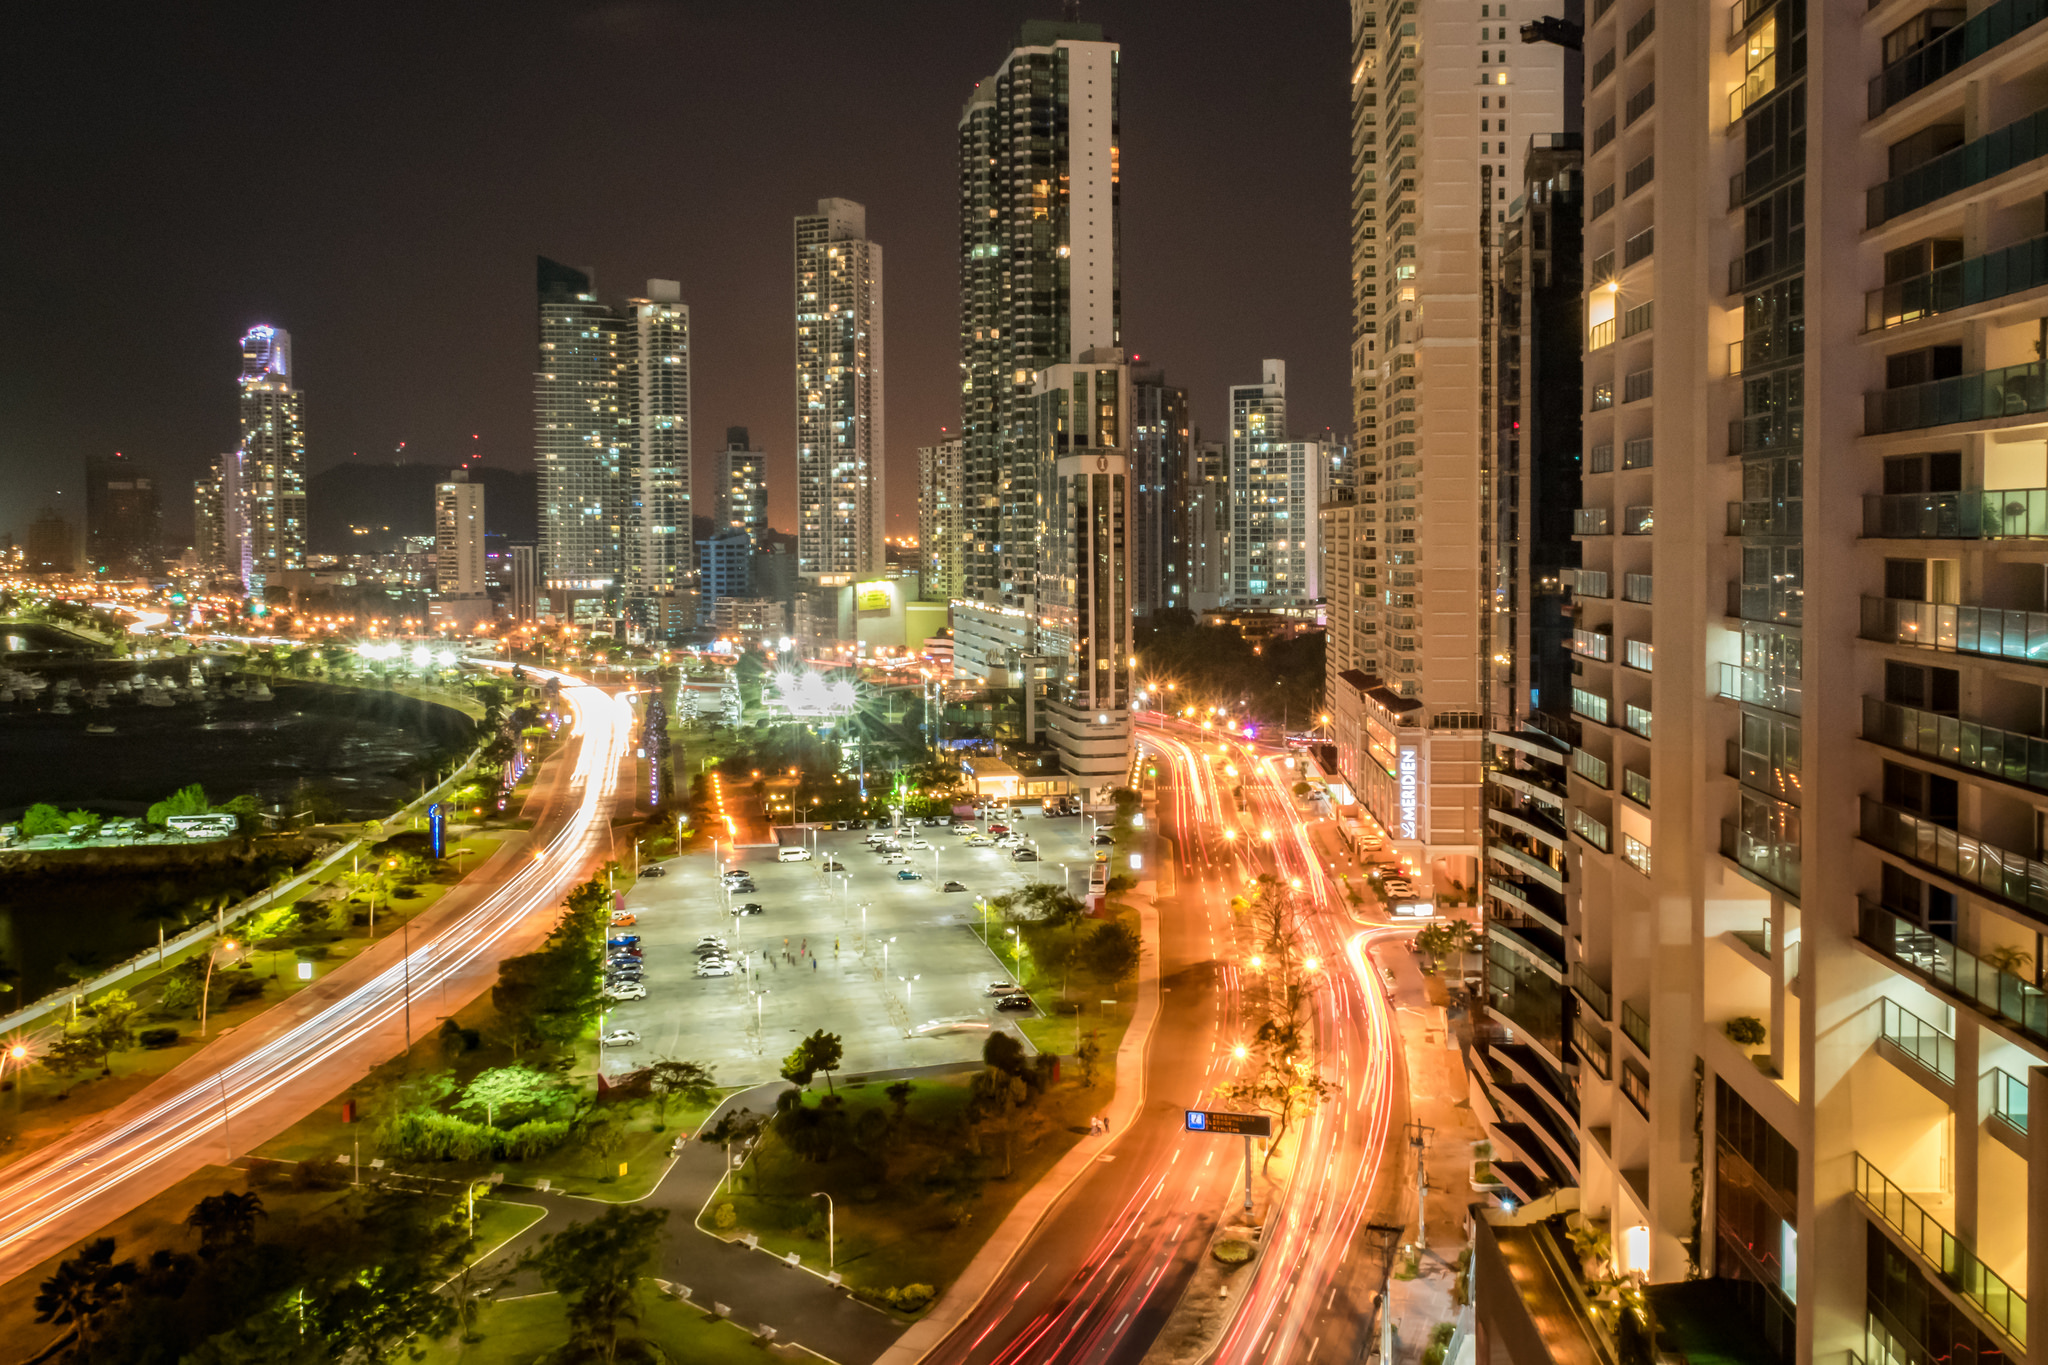 Traditionally a trade hub, Panama aims to step up on innovation and entrepreneurial spirit.